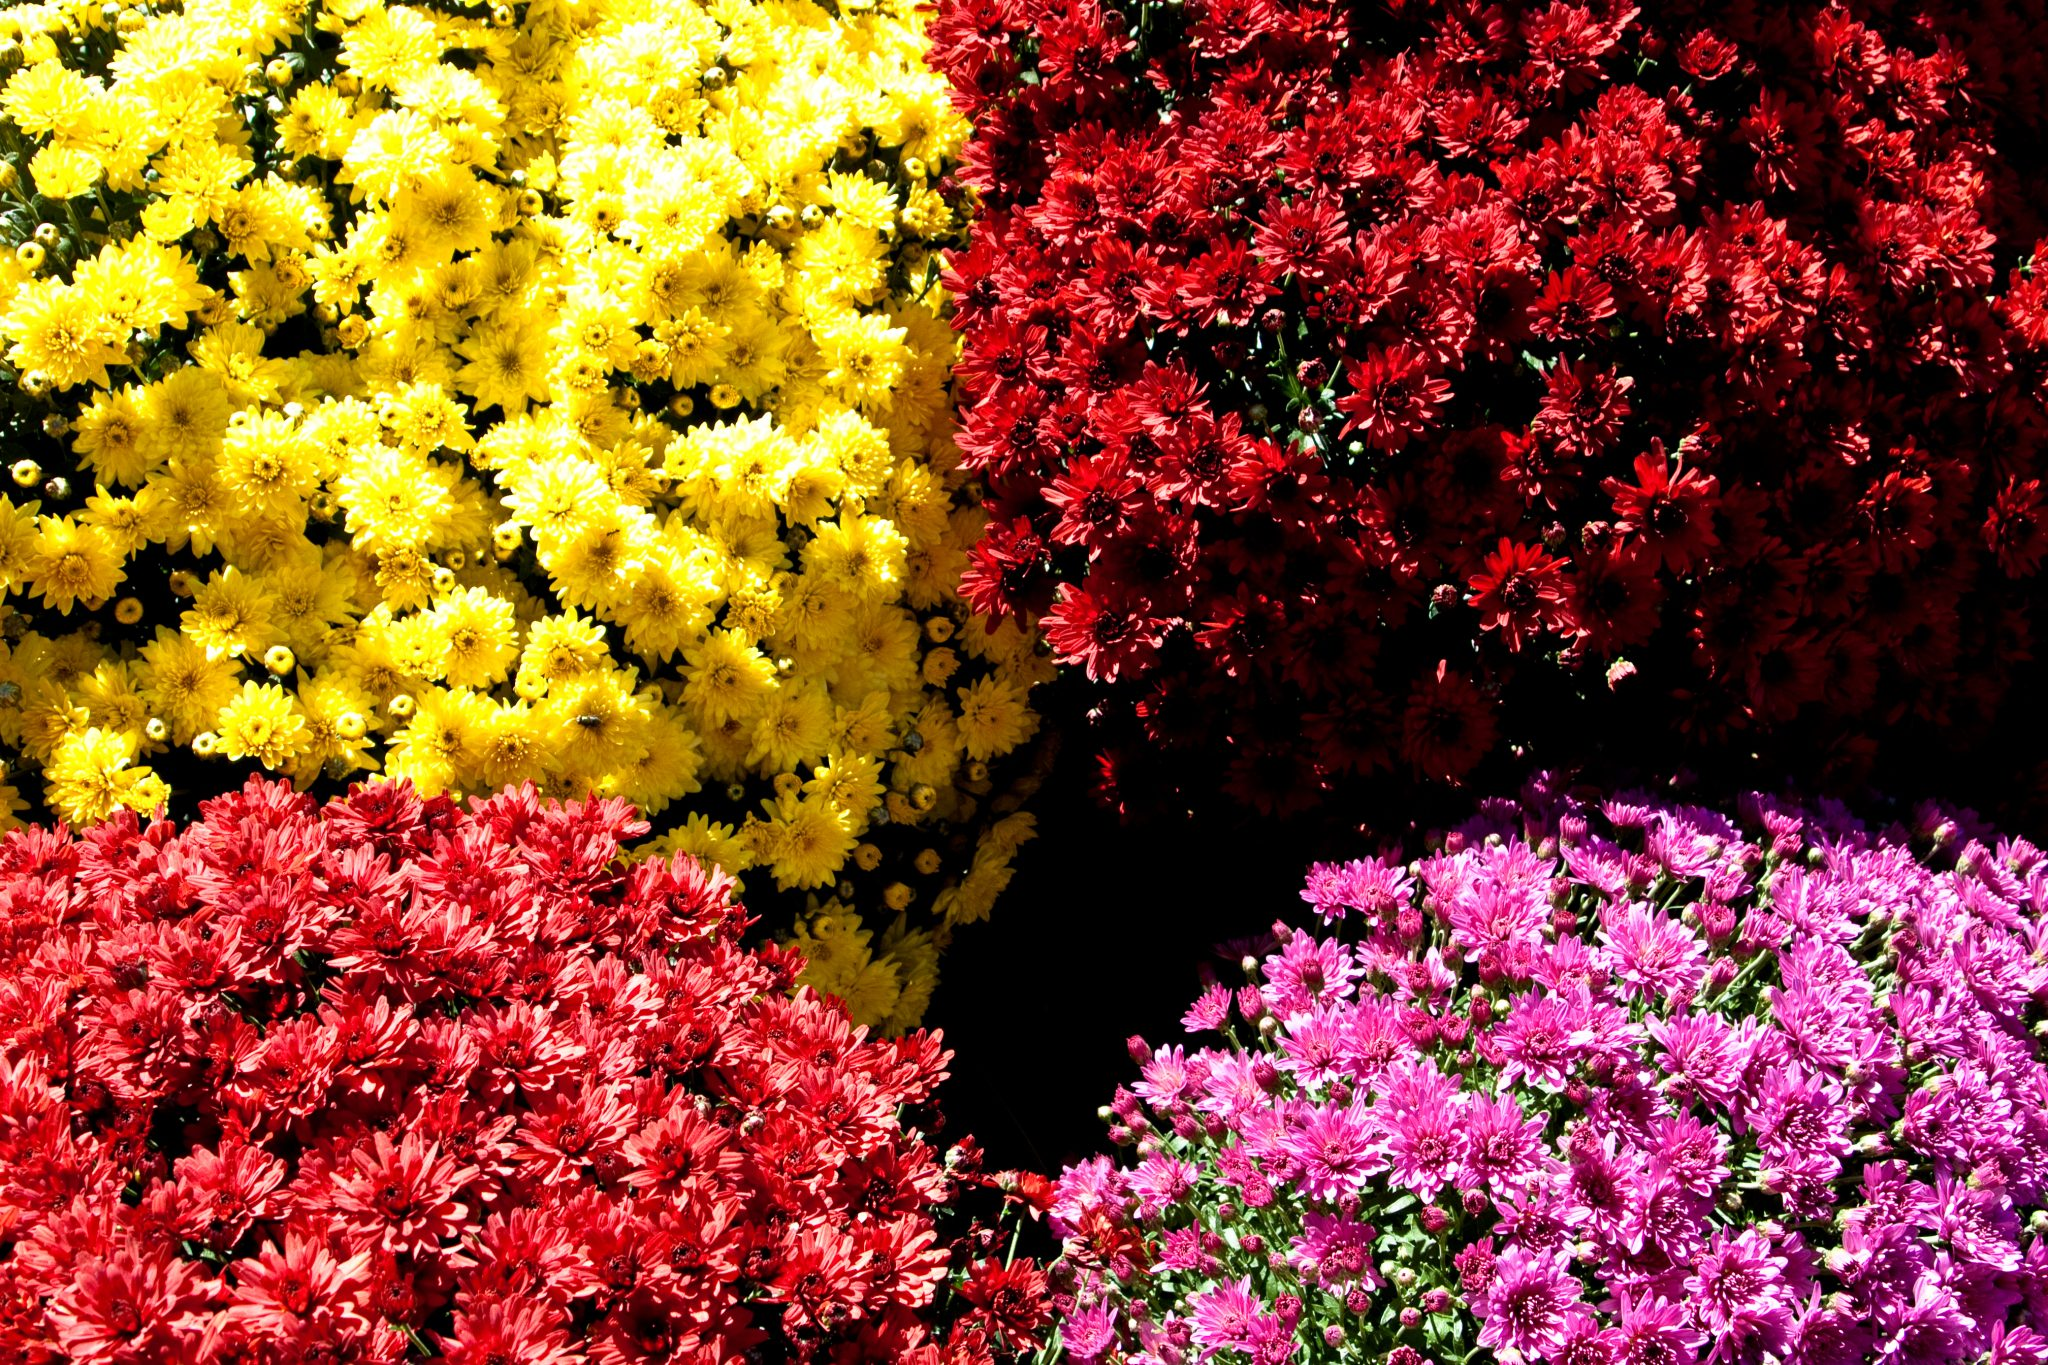 Check out the top 5 flowering annuals to plant this spring.